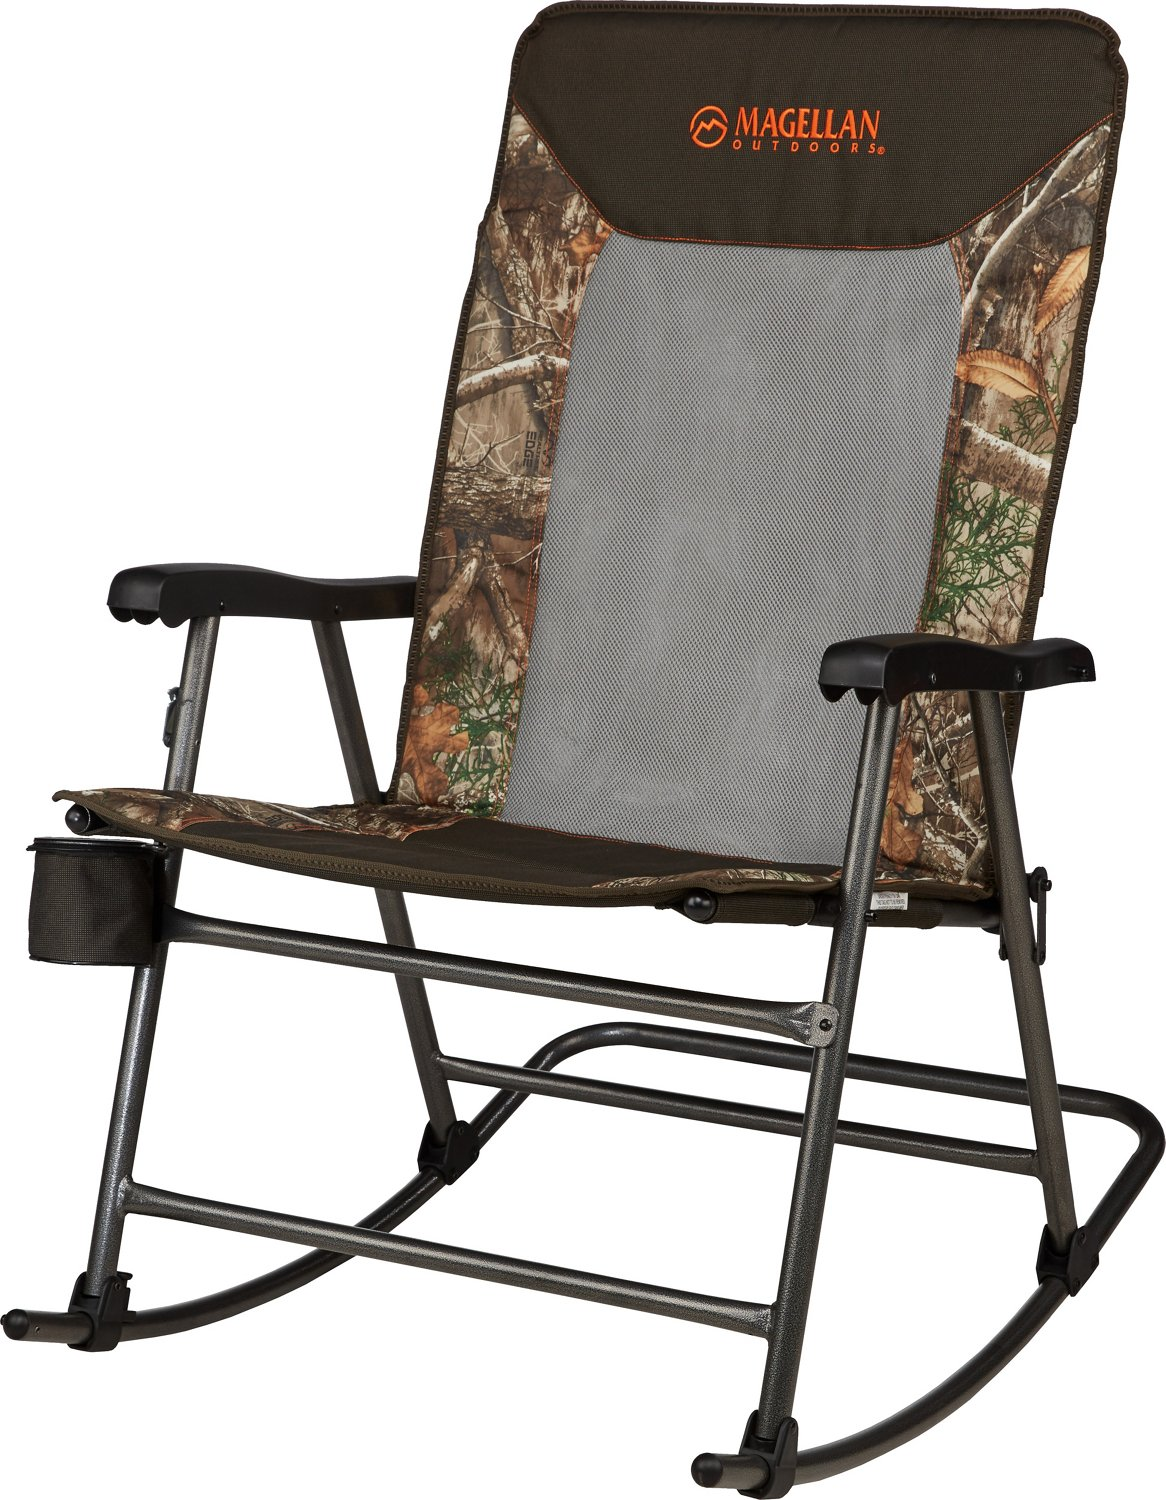 sc 1 st  Academy Sports + Outdoors : cheap outdoor rocking chairs - lorbestier.org